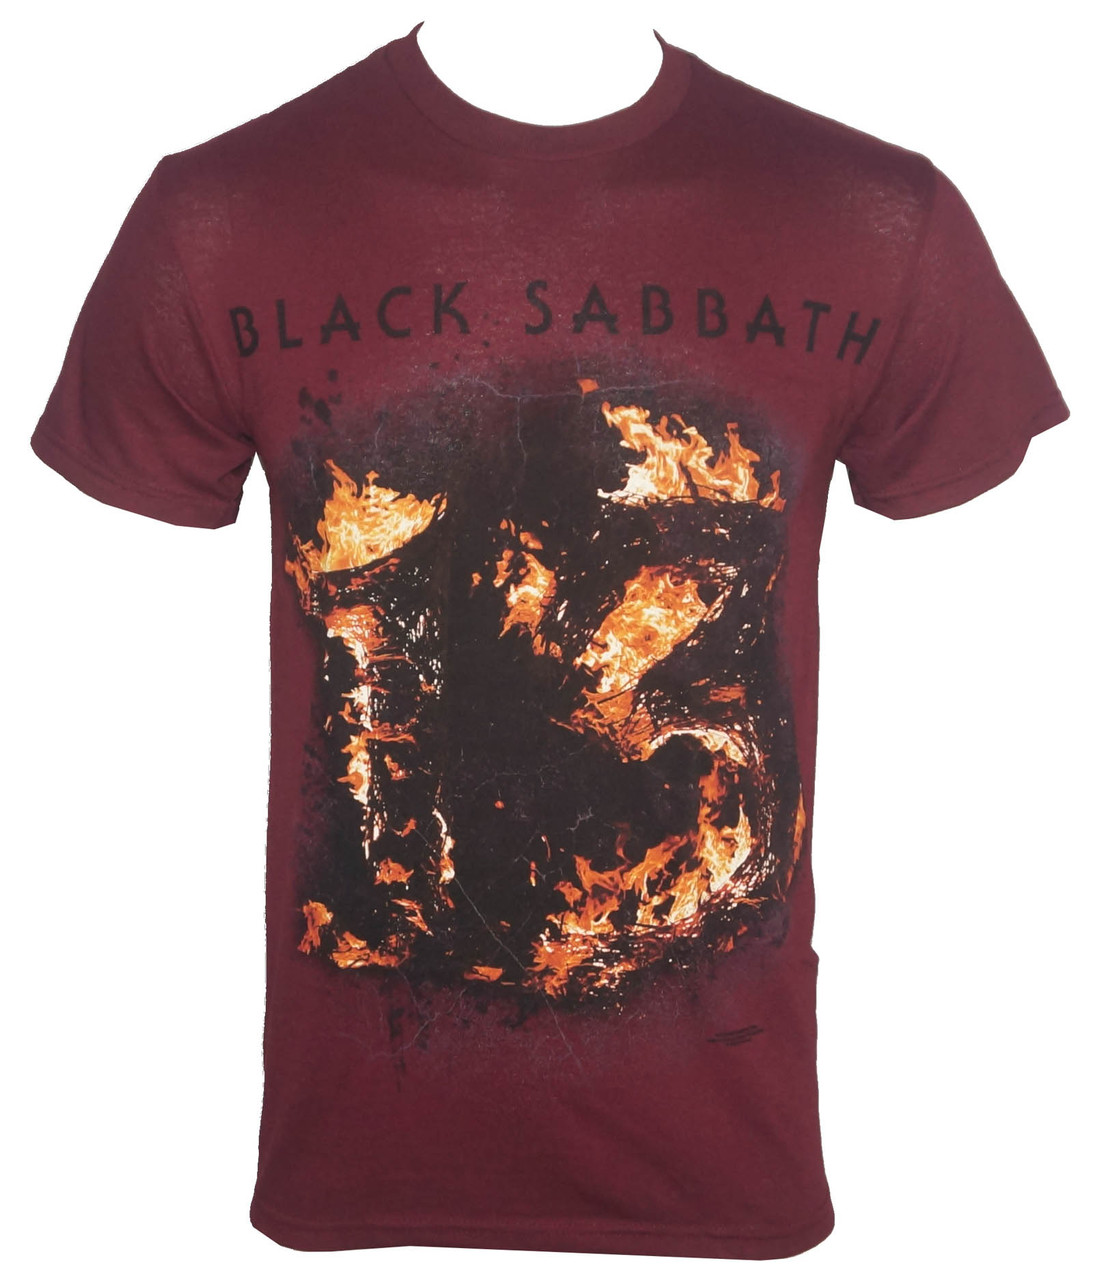 https://d3d71ba2asa5oz.cloudfront.net/12013655/images/bsh34191041_parent%20black%20sabbath%2013%20flame%20maroon%20shirt.jpg